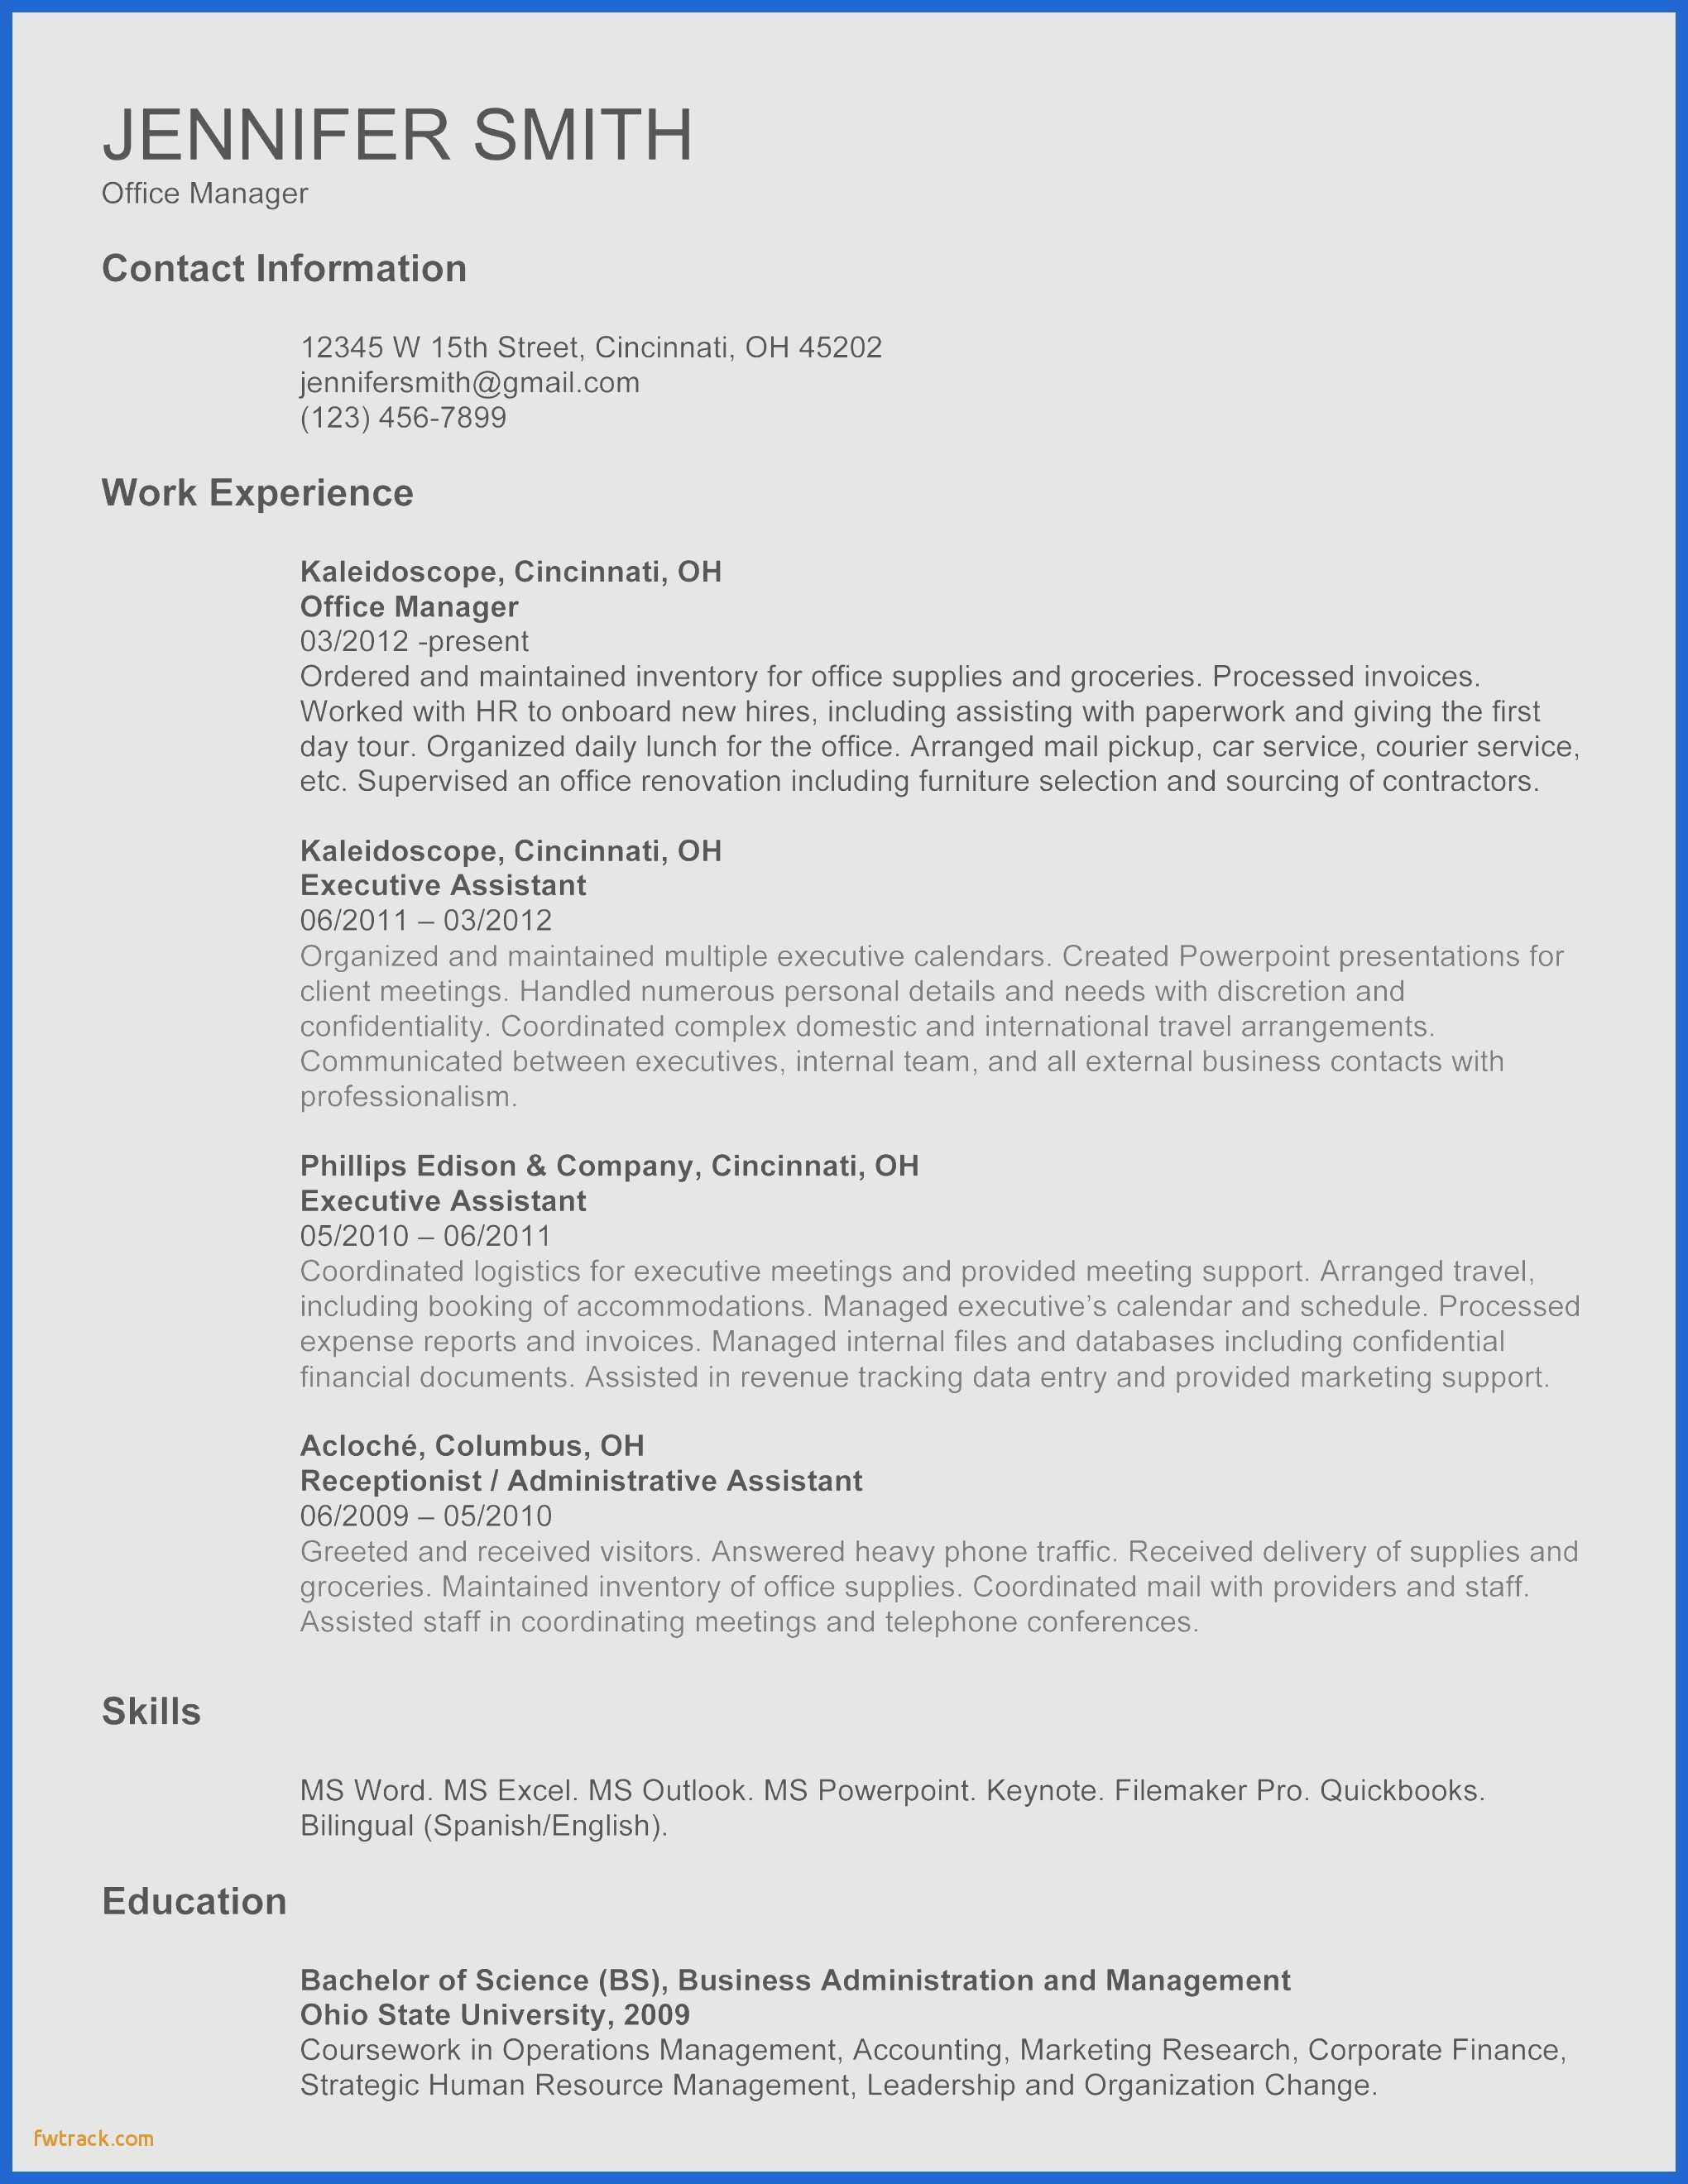 College Student Resume Template Microsoft Word - College Student Resume Template Microsoft Word Fwtrack